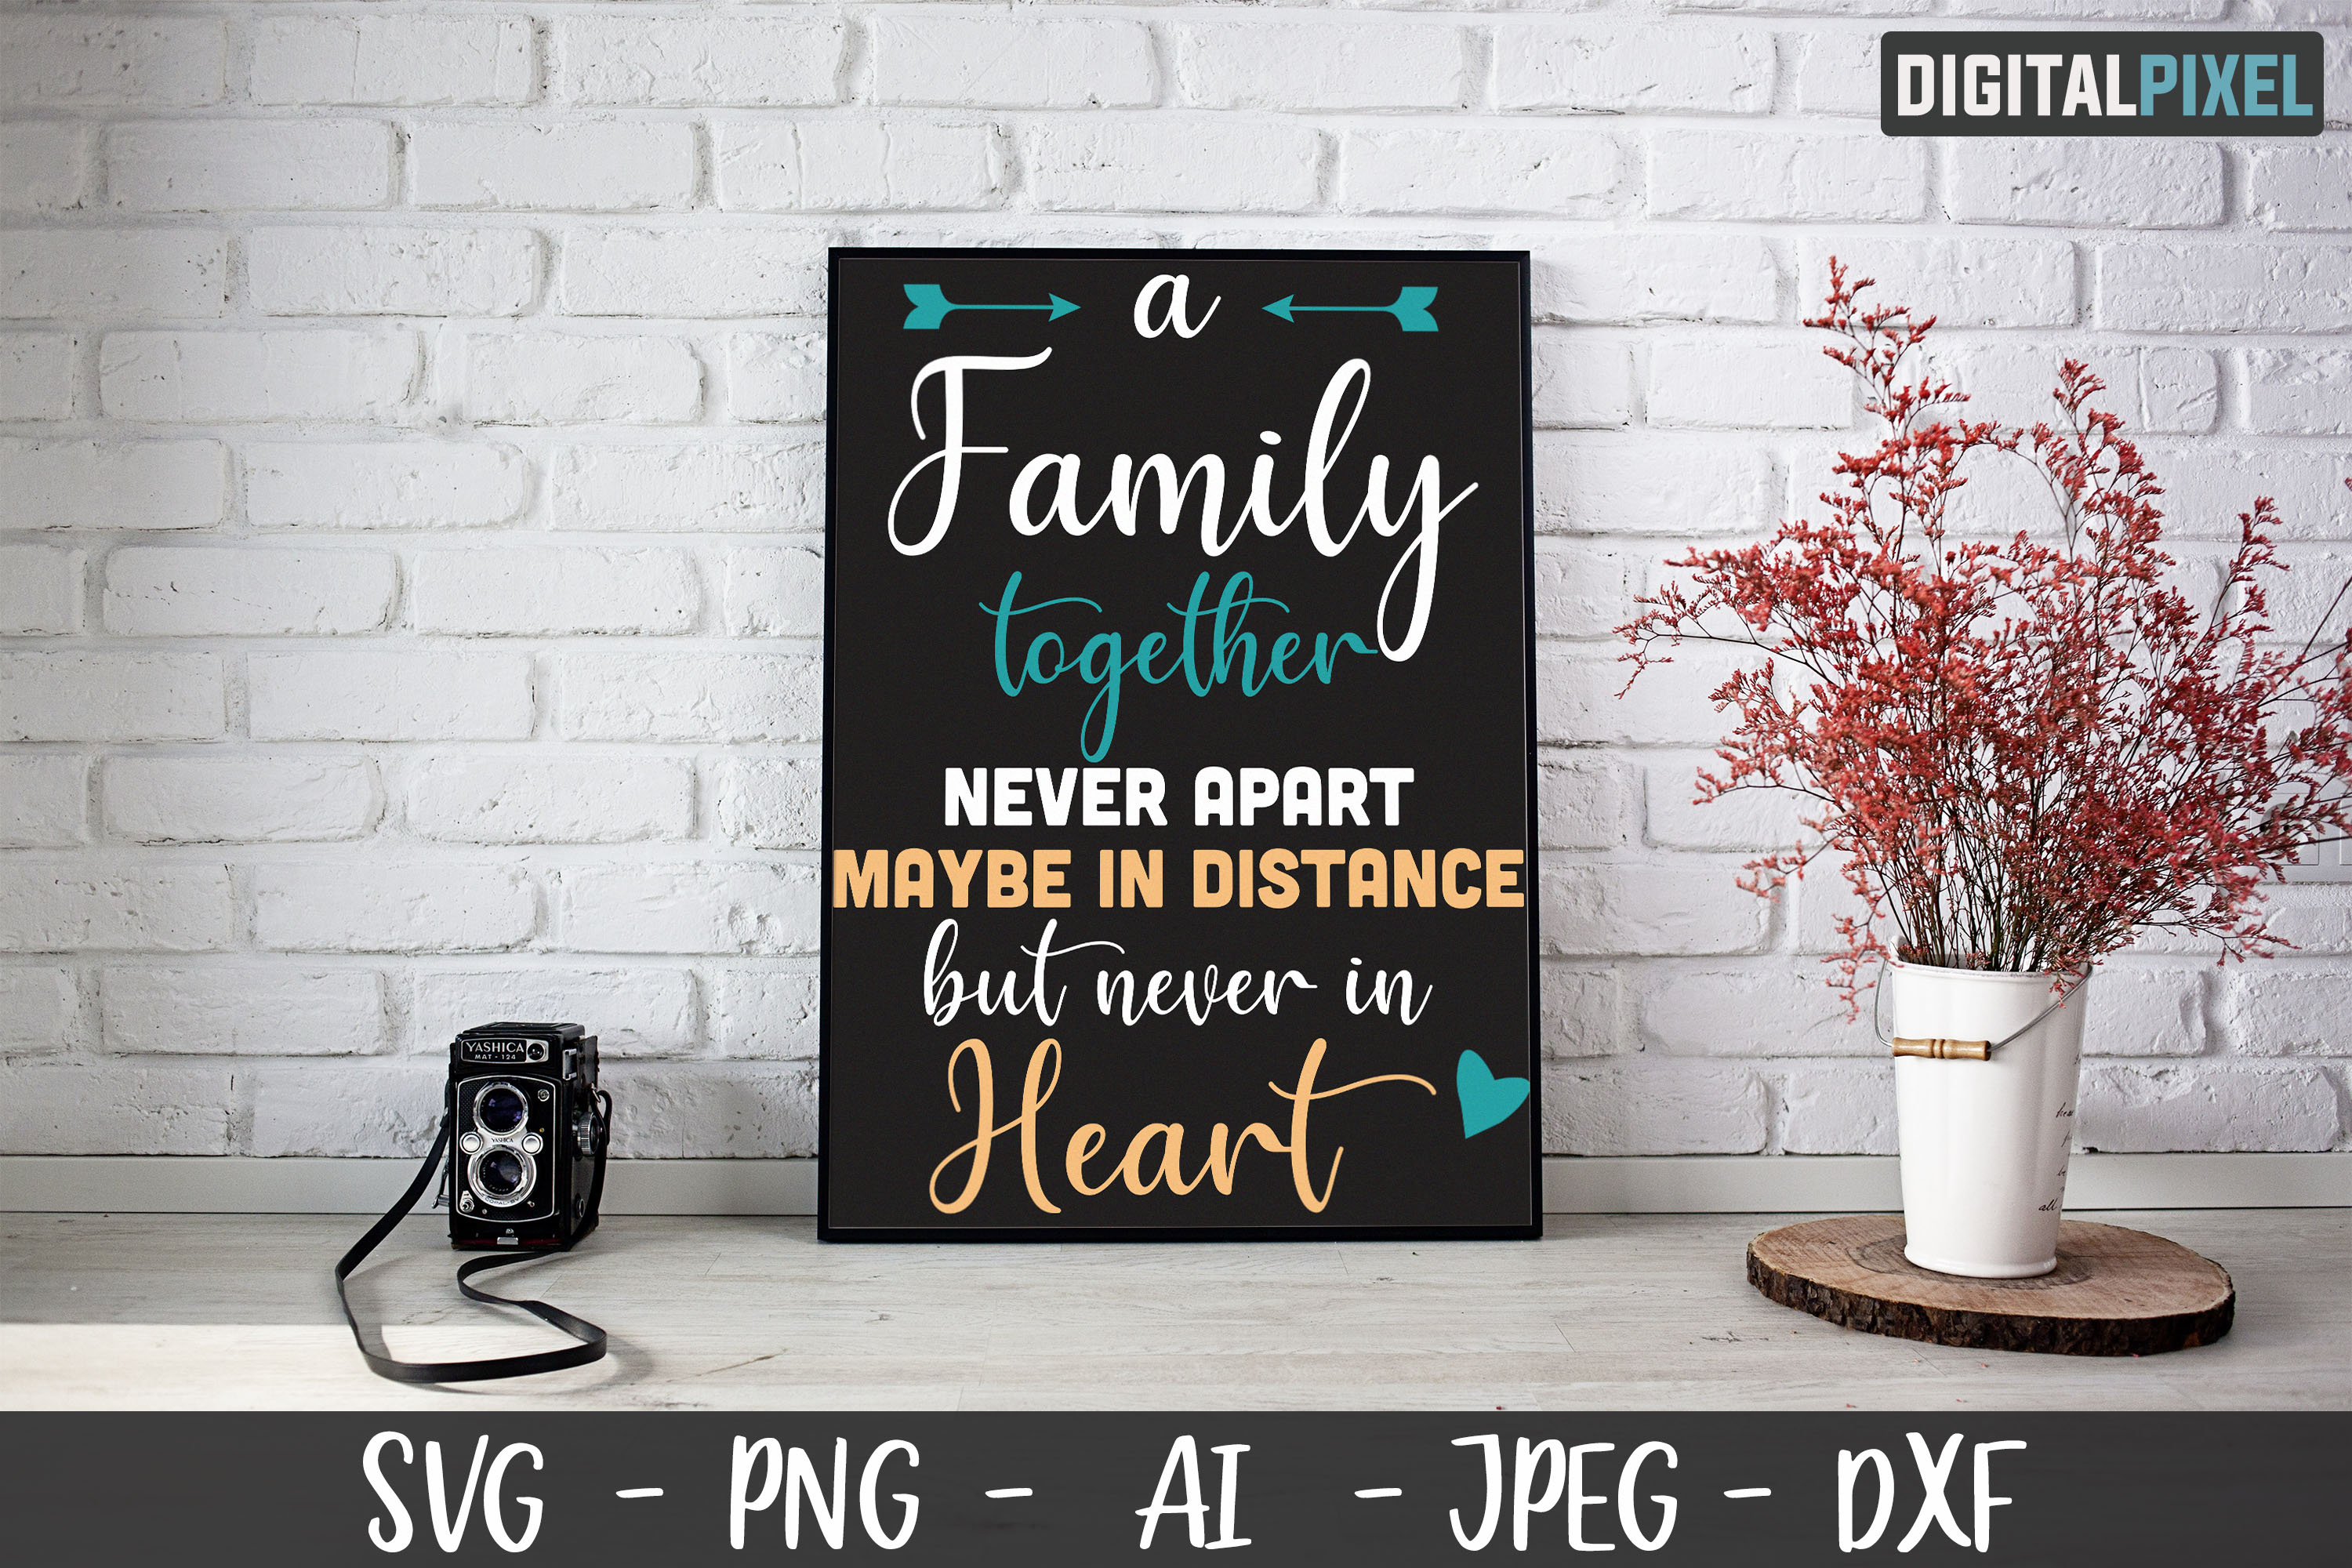 Family Together Never Apart SVG PNG JPEG AI DXF, Family Love example image 1